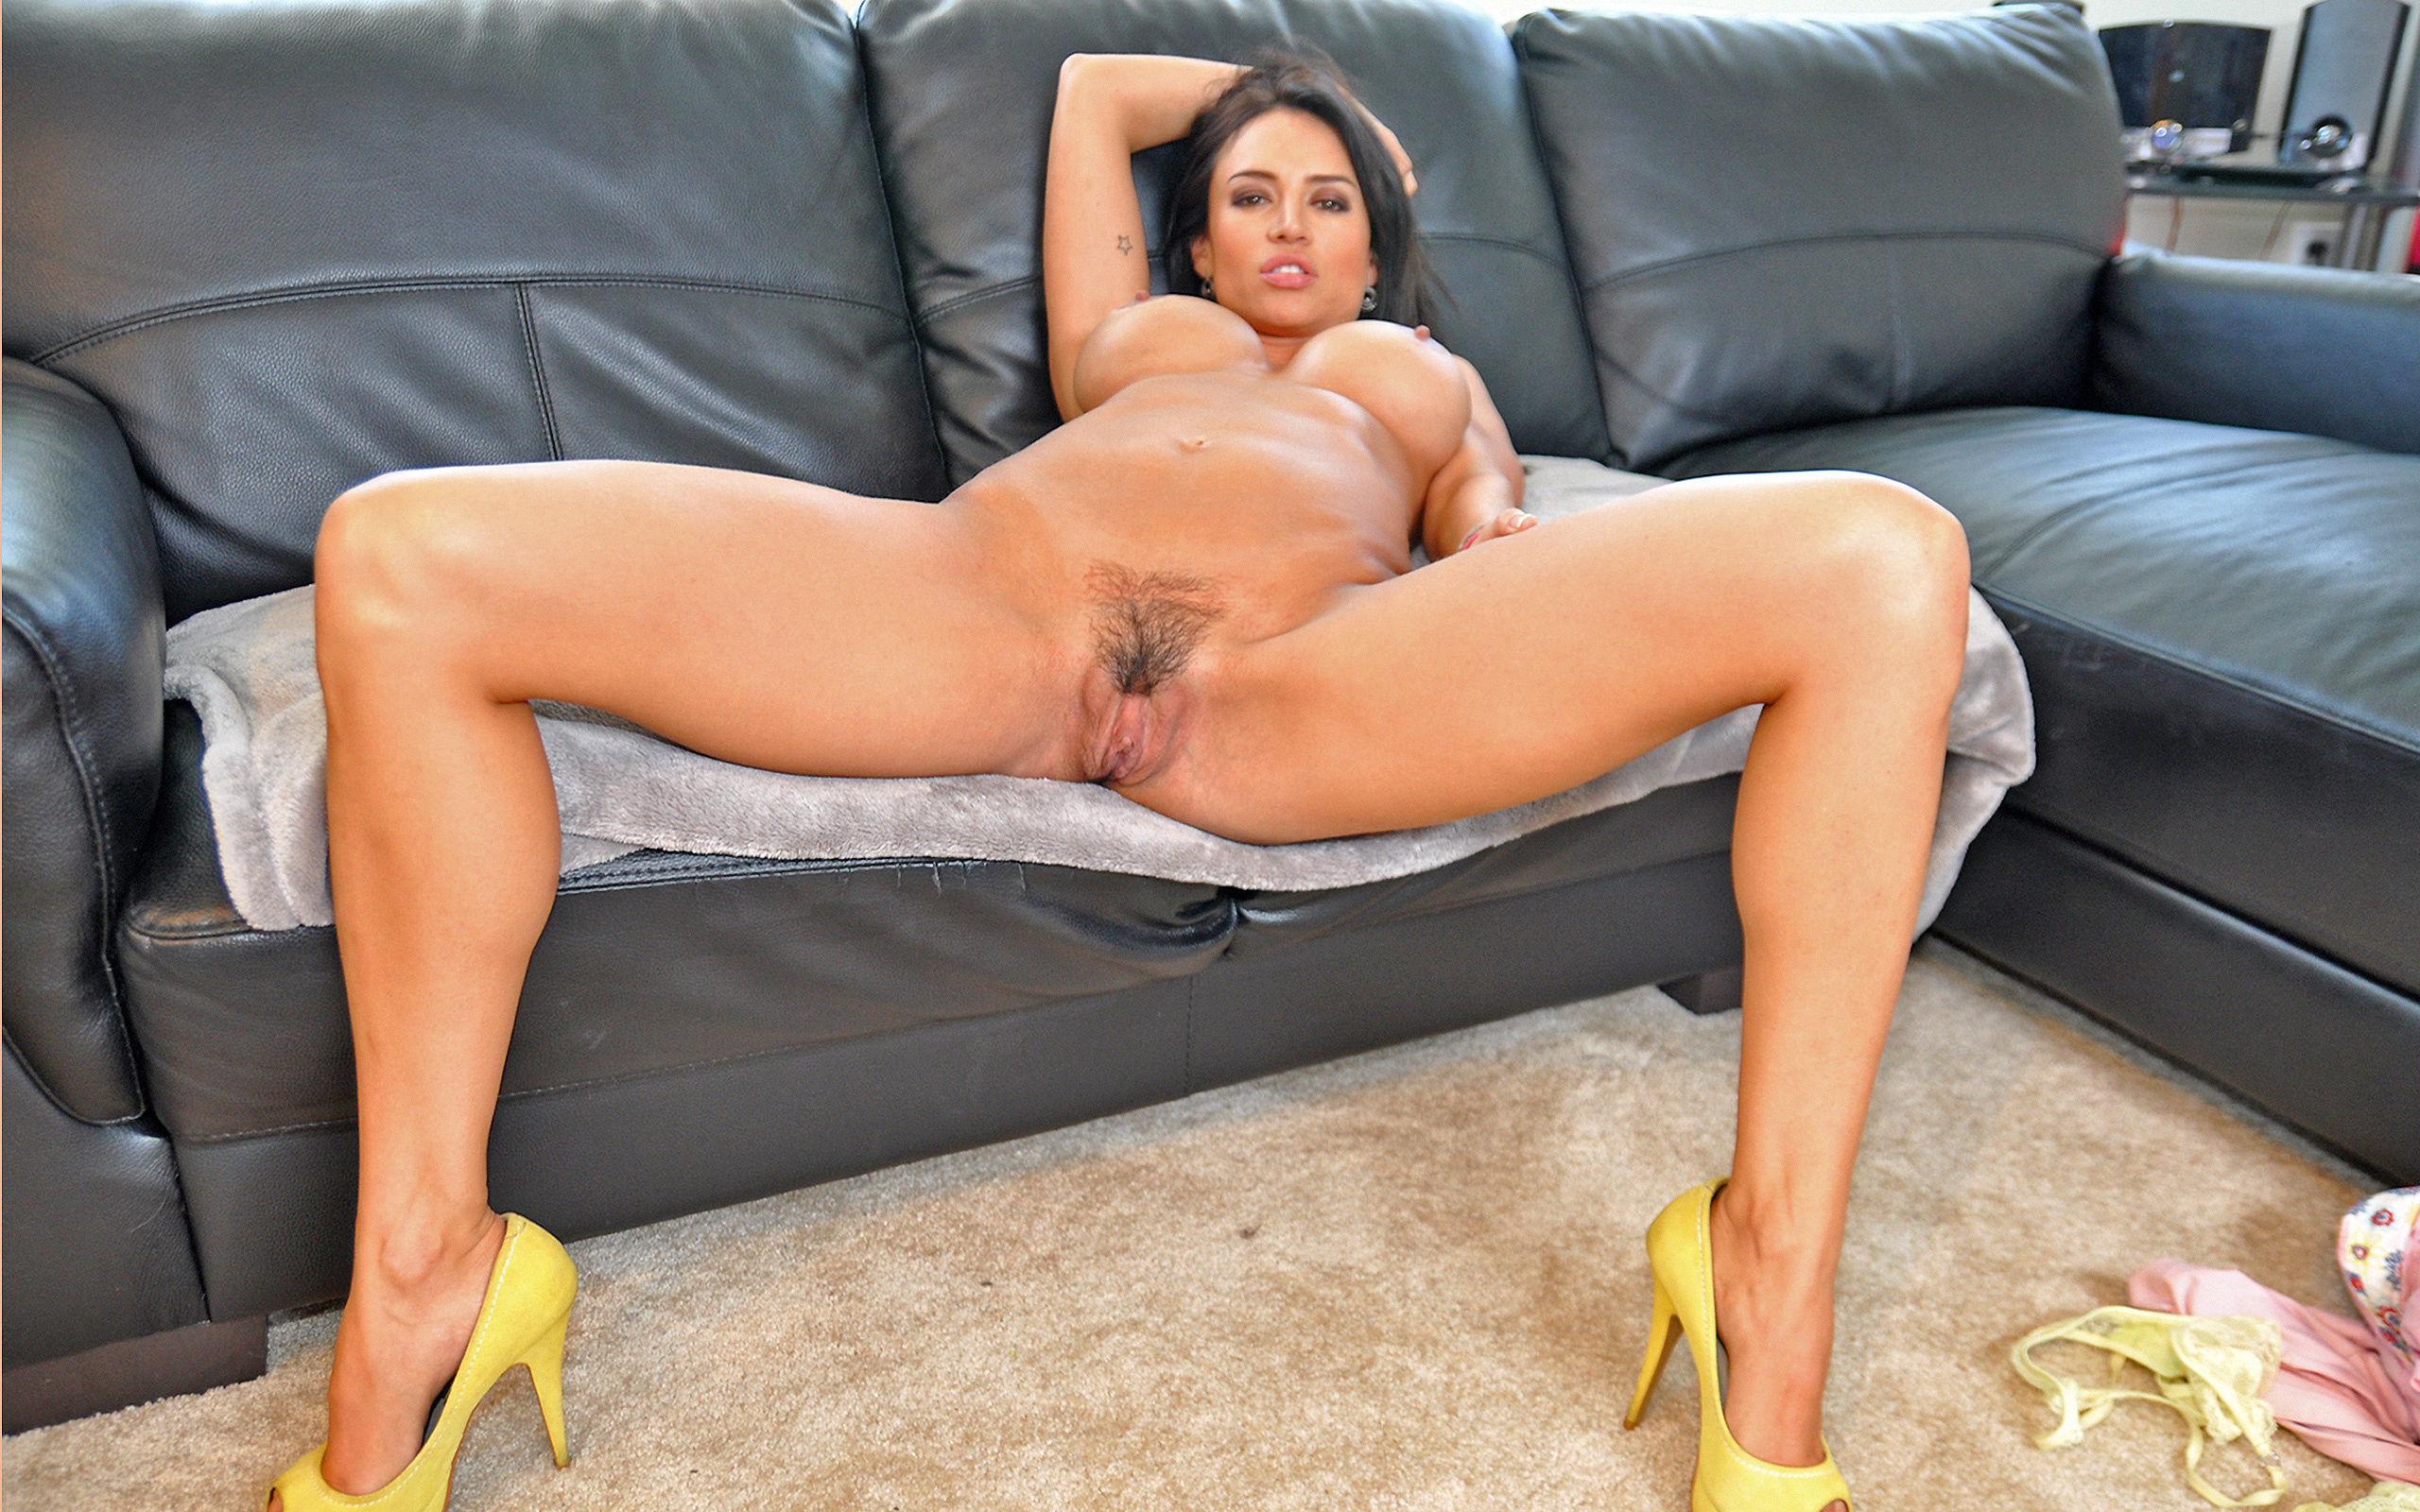 Very valuable brunette legs spread wide are